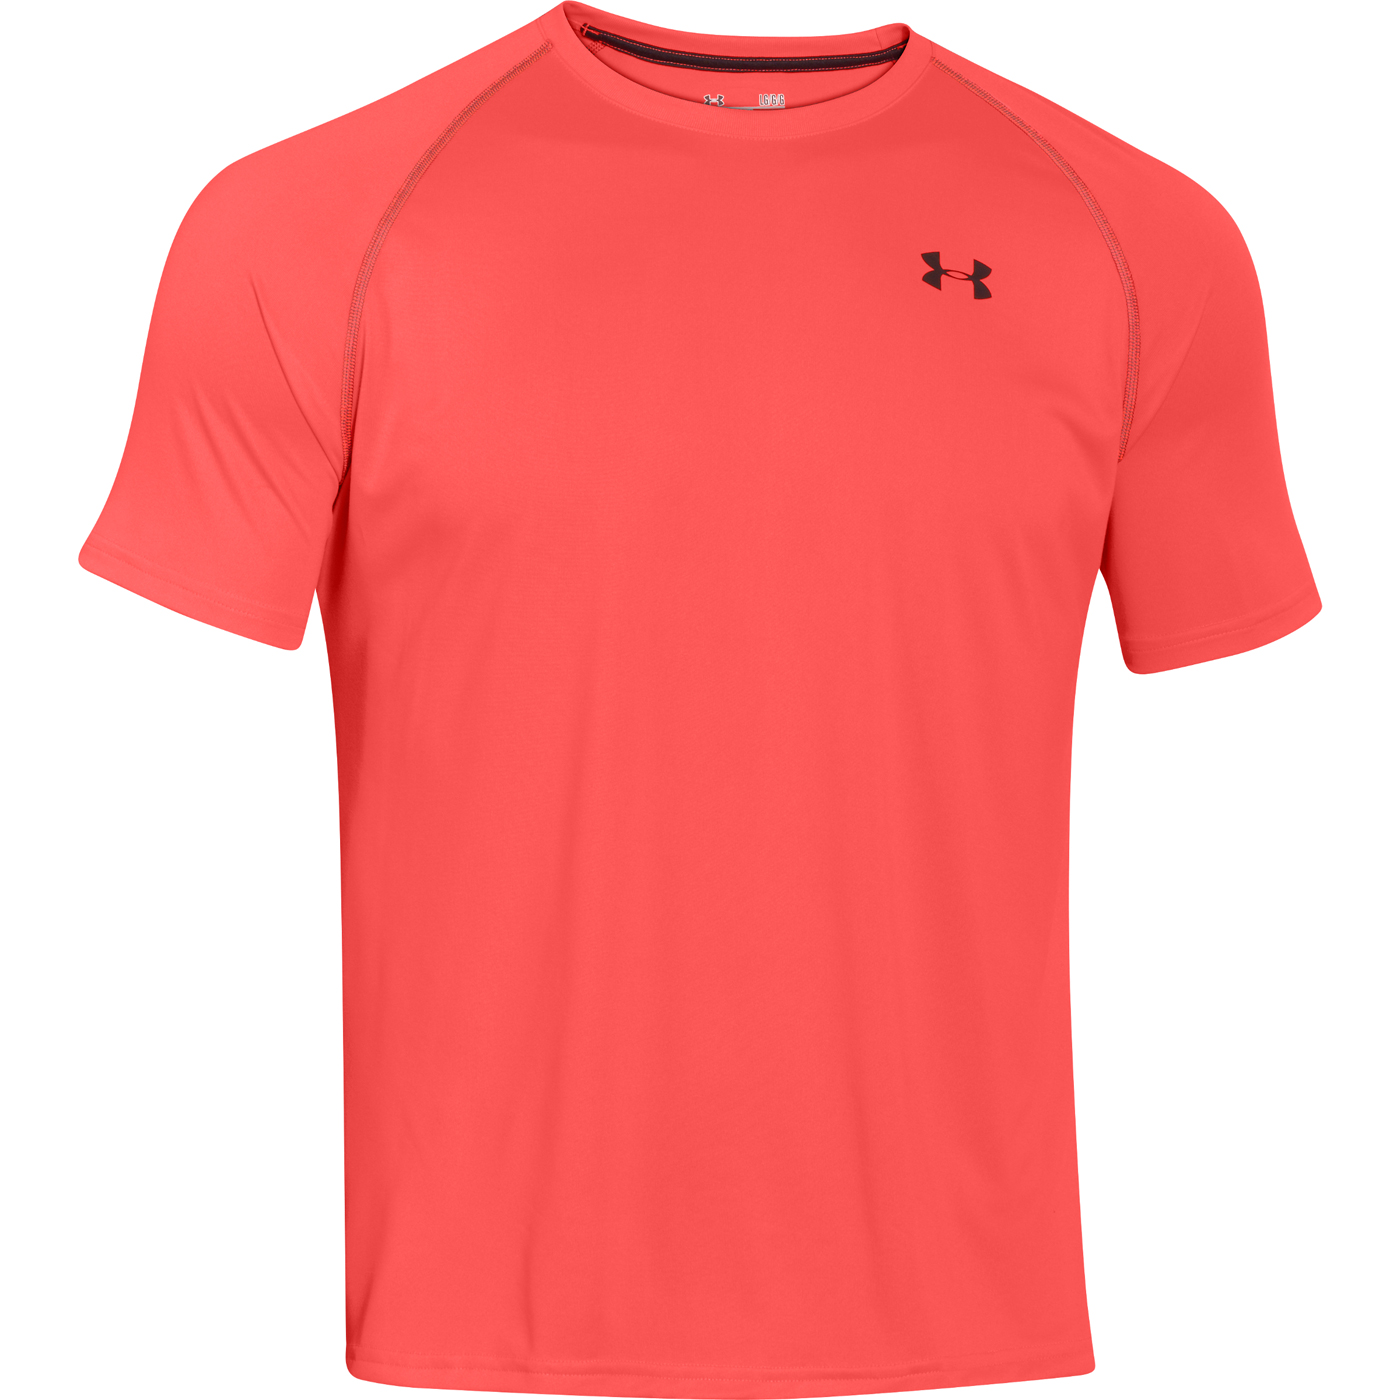 Under armour mens heatgear new tech shortsleeve tee shirt for Under armour i will shirt